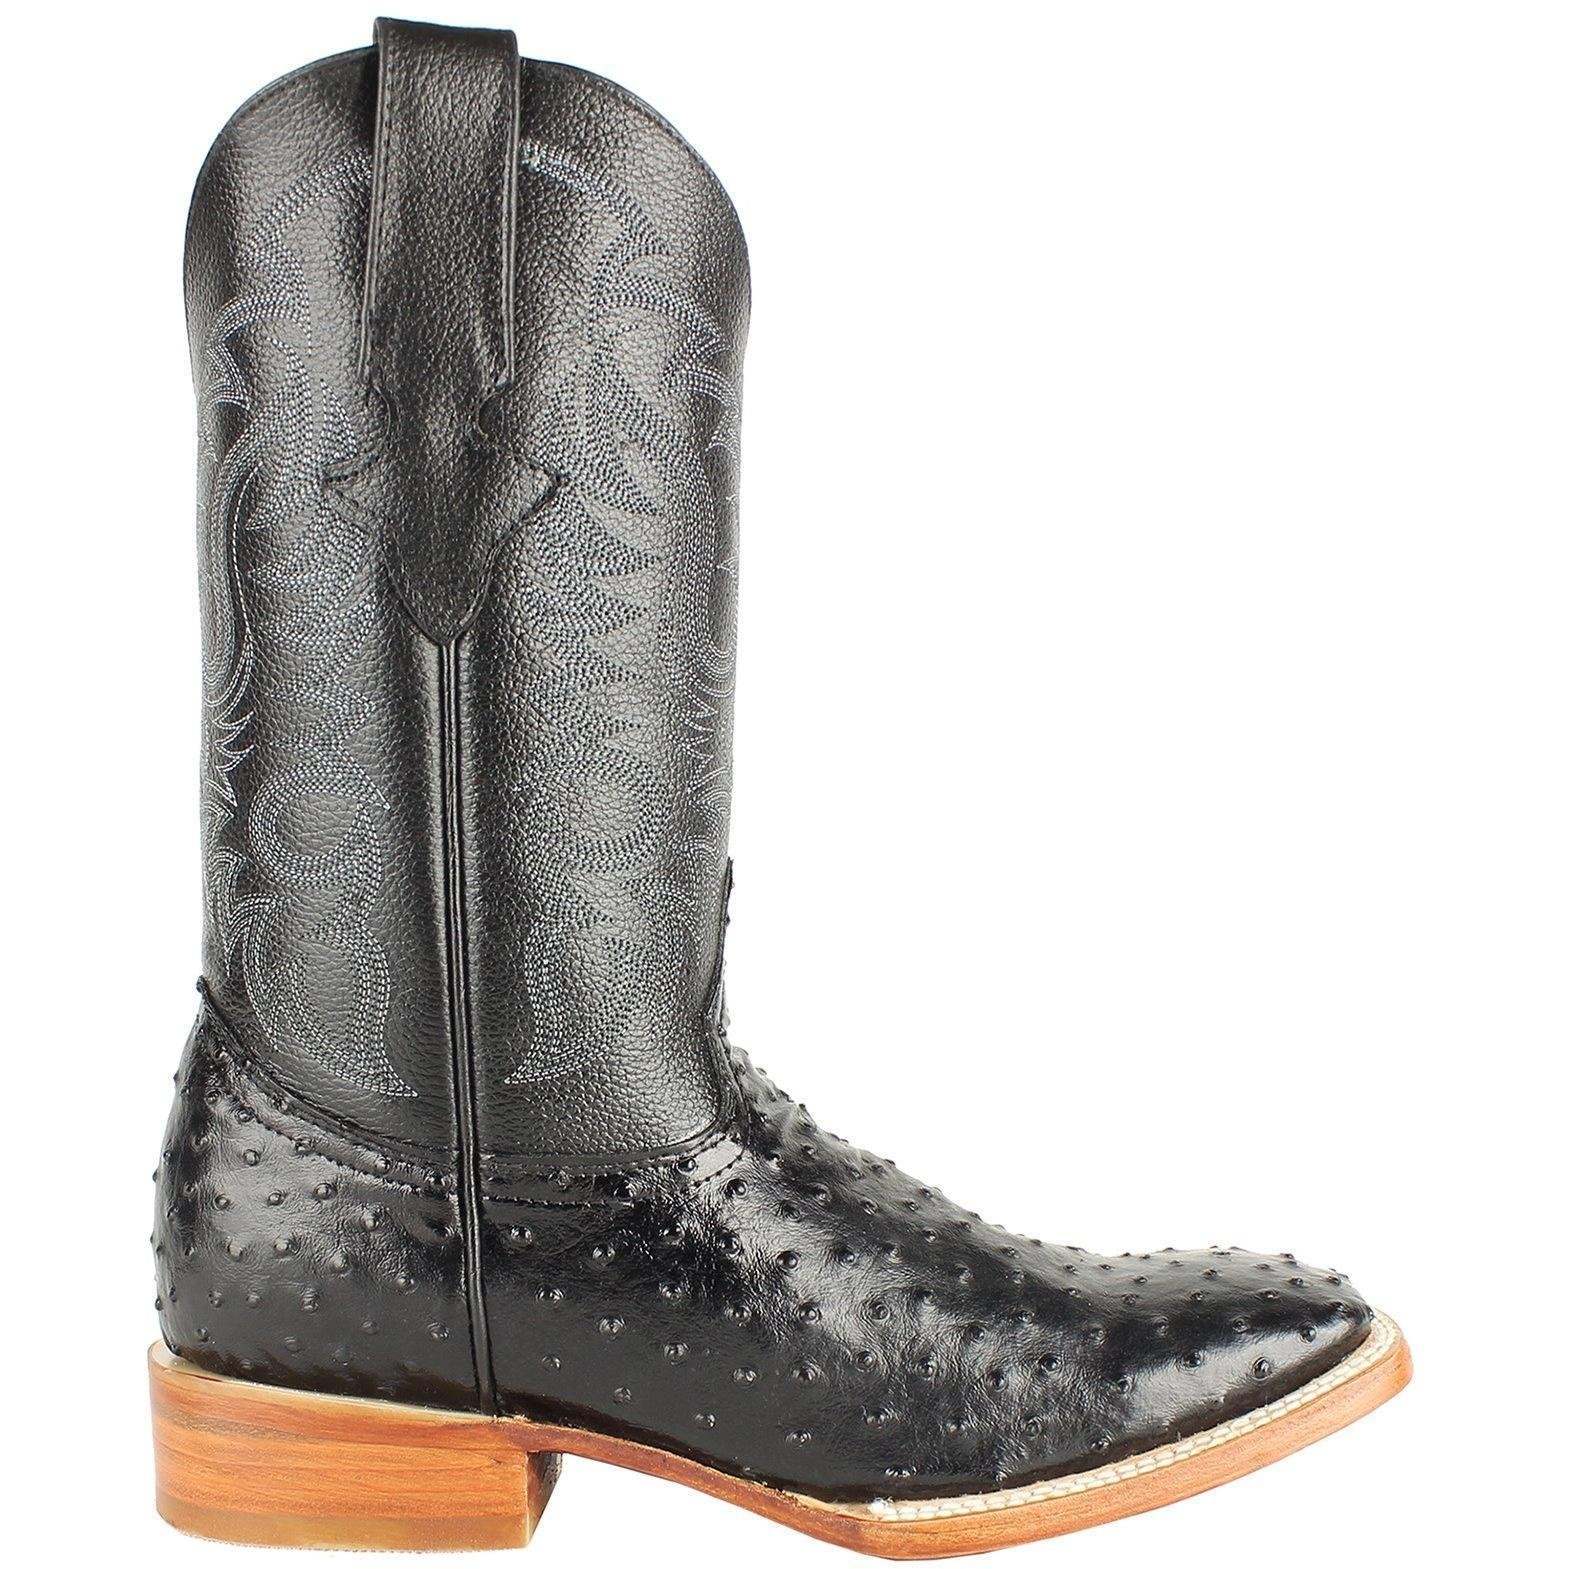 Men Genuine Cowhide Leather Ostrich Print Square Toe Western Boots_Black_10 by Dona Michi (Image #2)